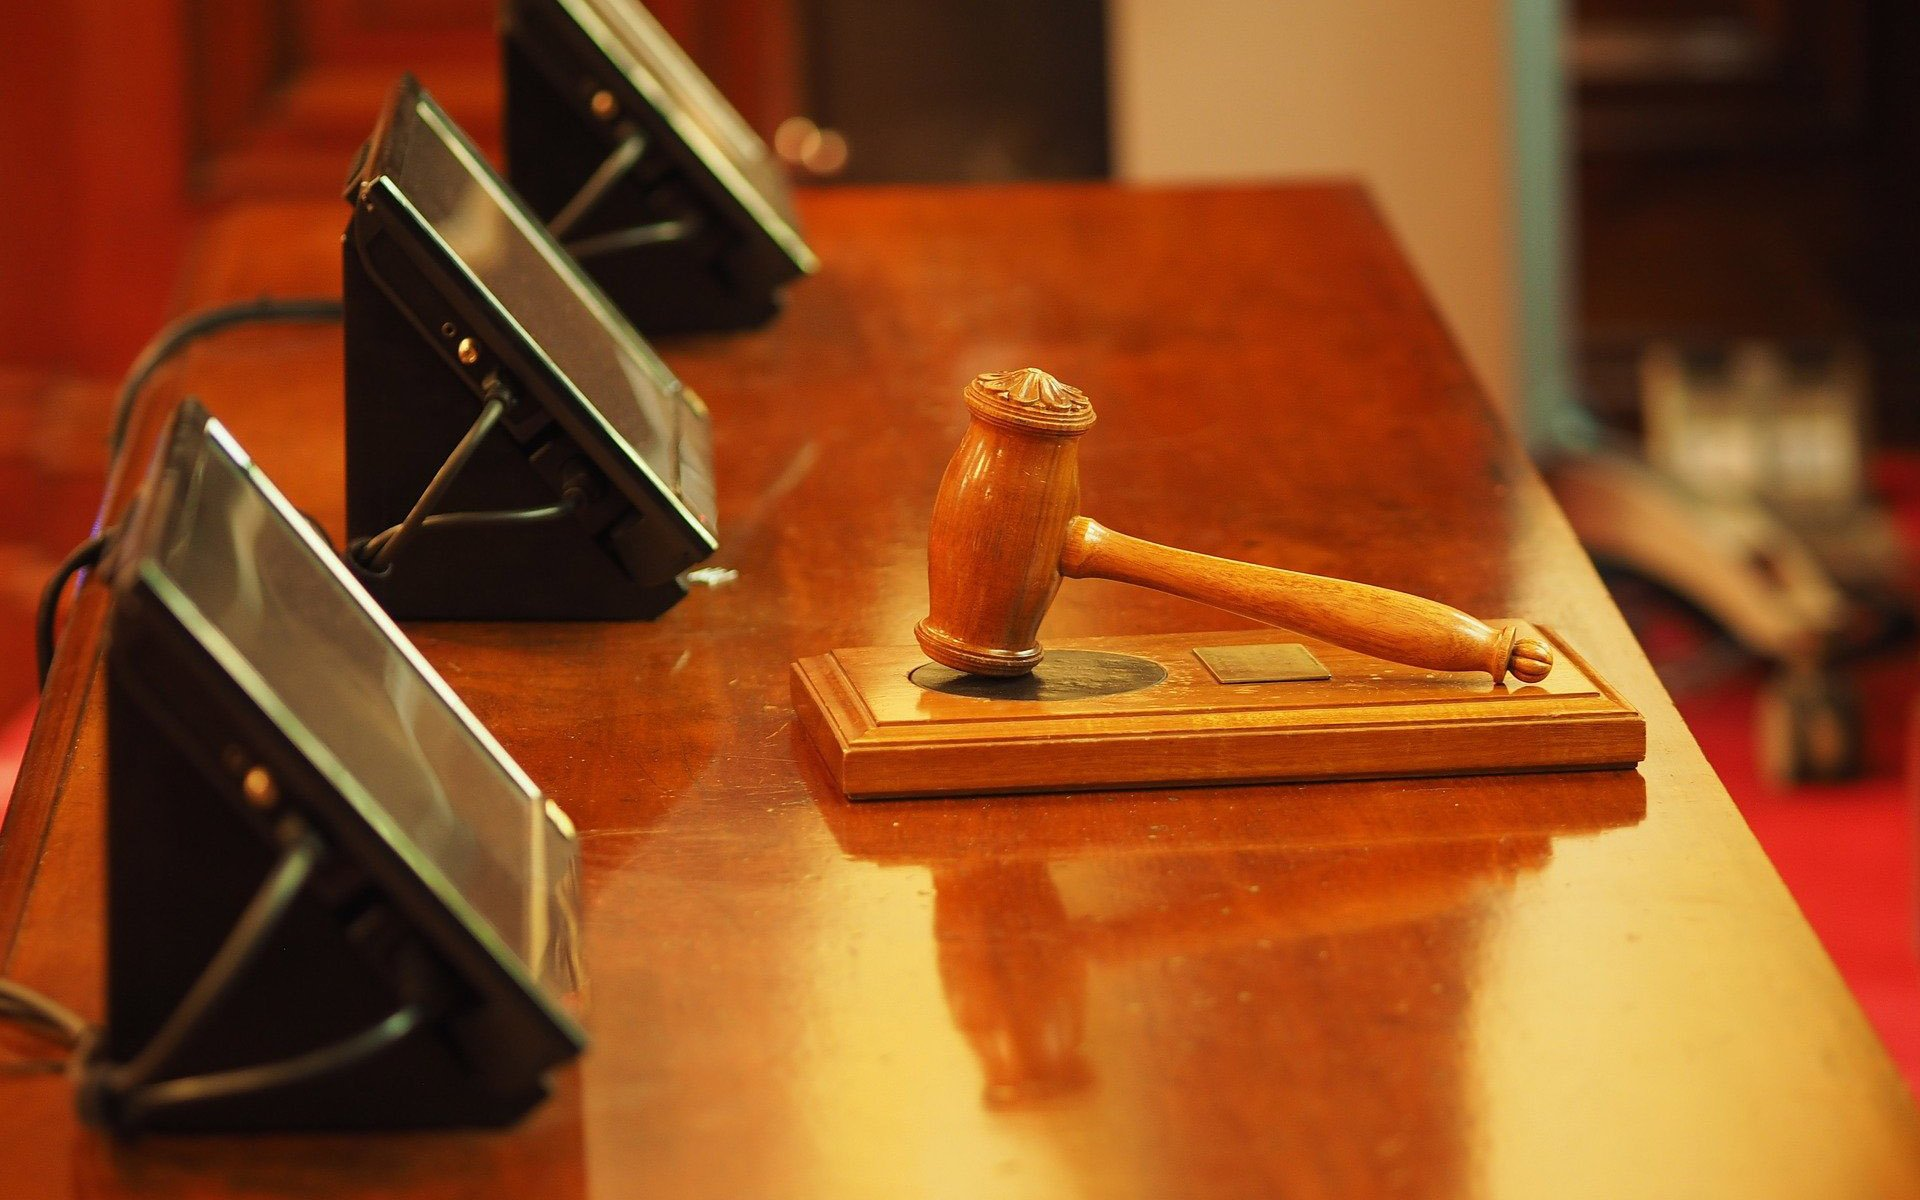 US Court Terminates Kraken, Bitmain, Roger Ver Lawsuit